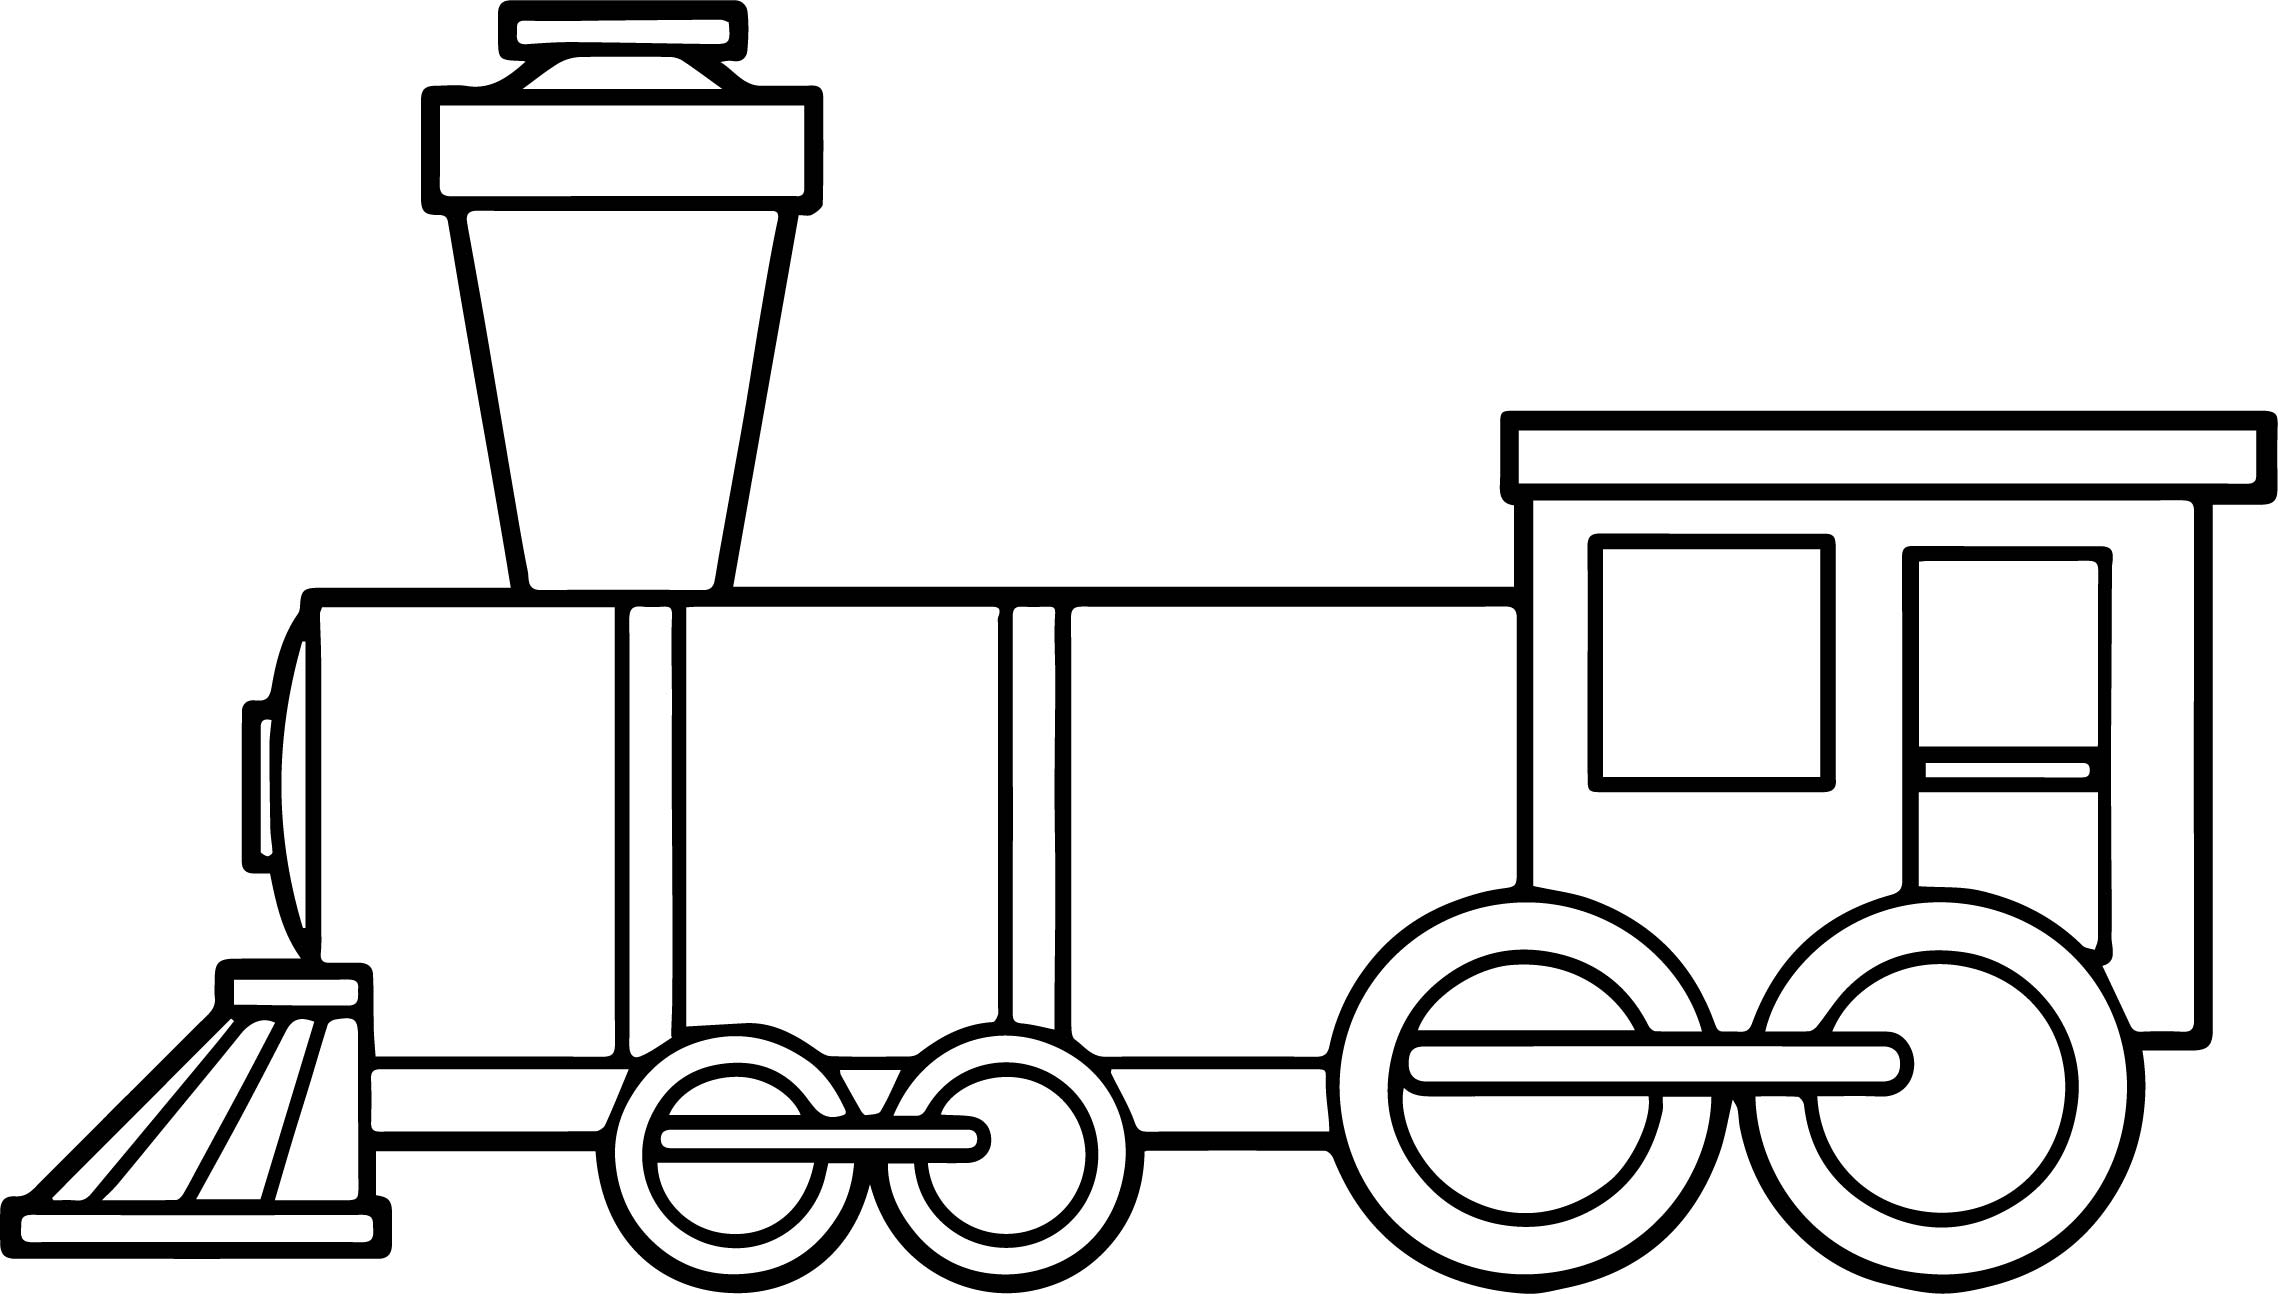 Boxcar clipart clipart images gallery for free download.